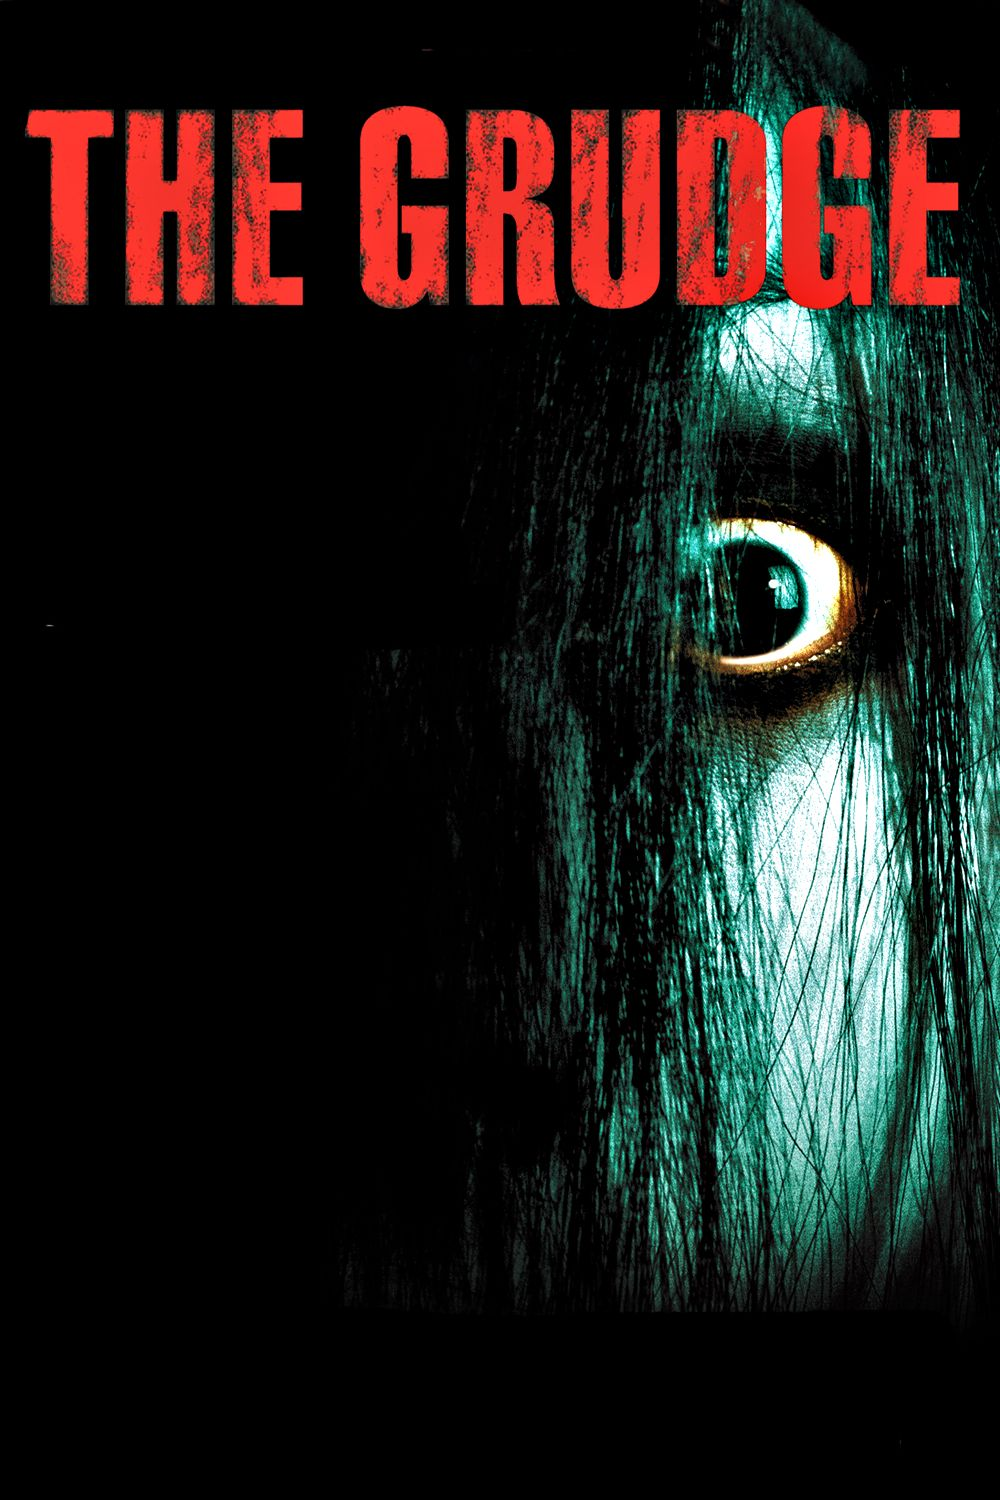 The Grudge (2004) Movie Review (With images) The grudge